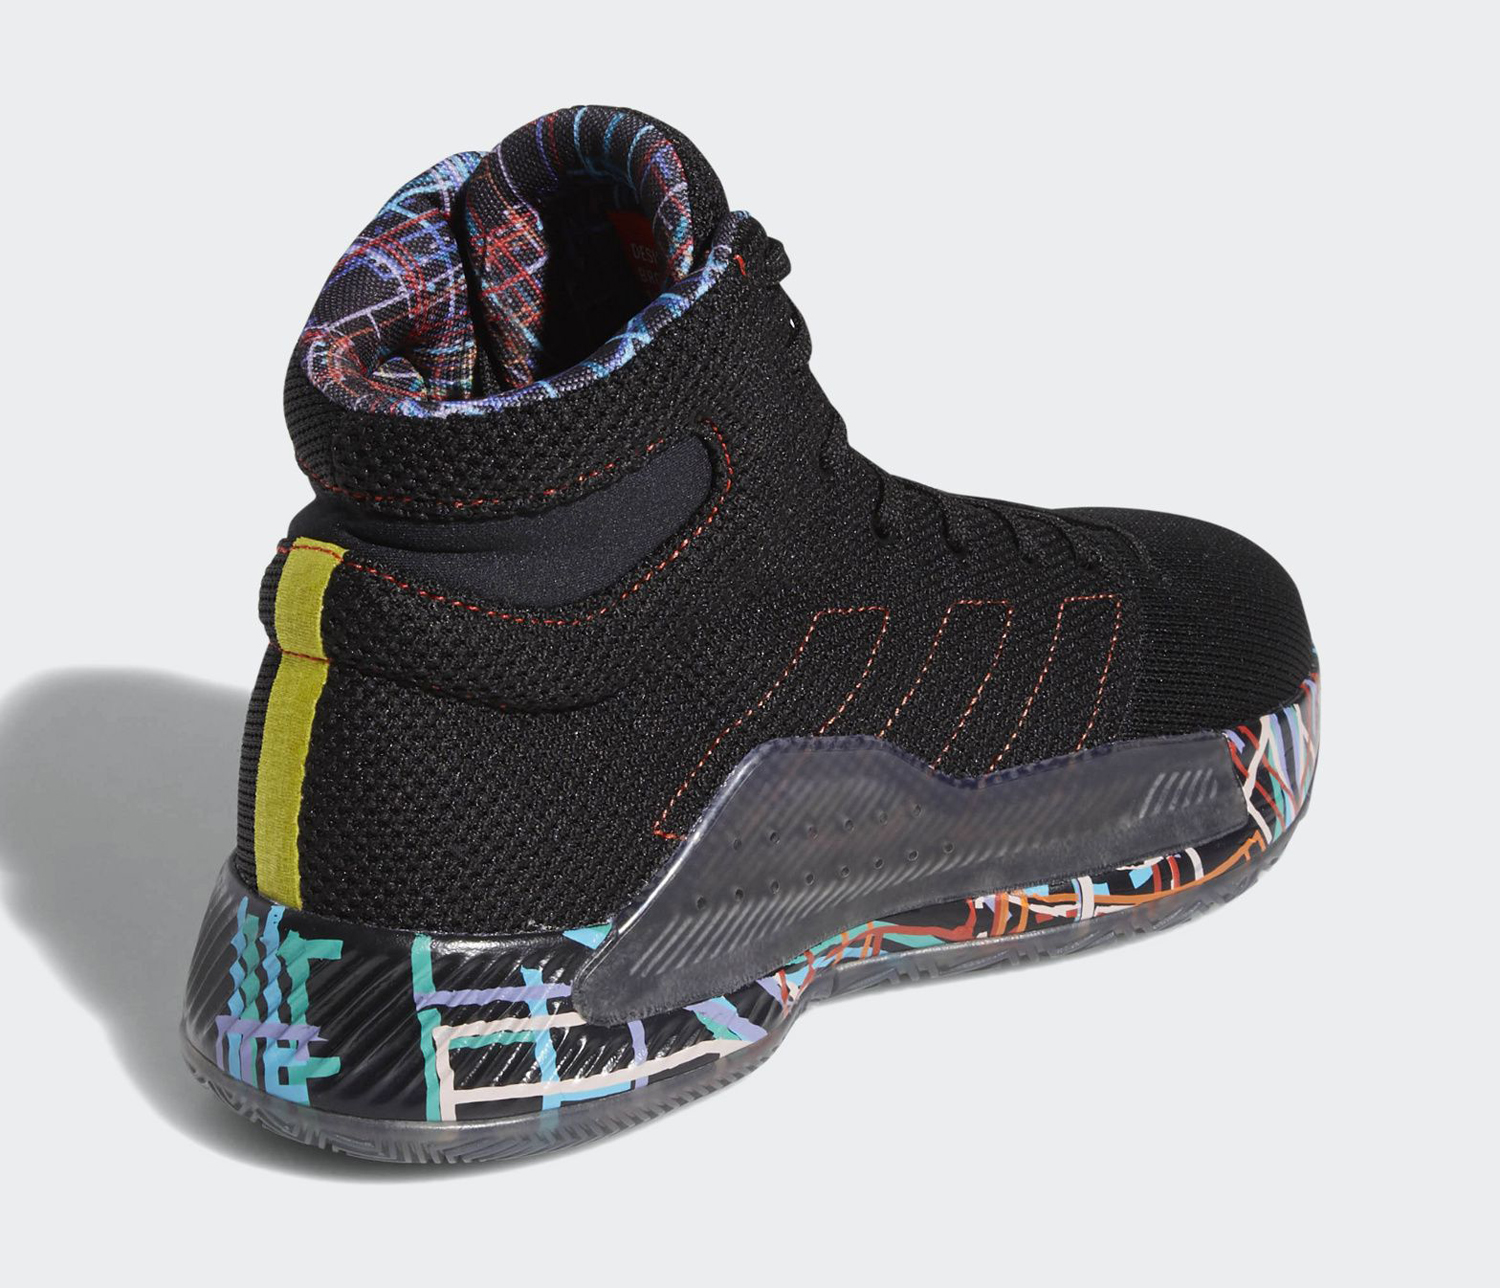 3c8ecd61c267 adidas-Pro-Bounce-Madness-2019-2 - WearTesters